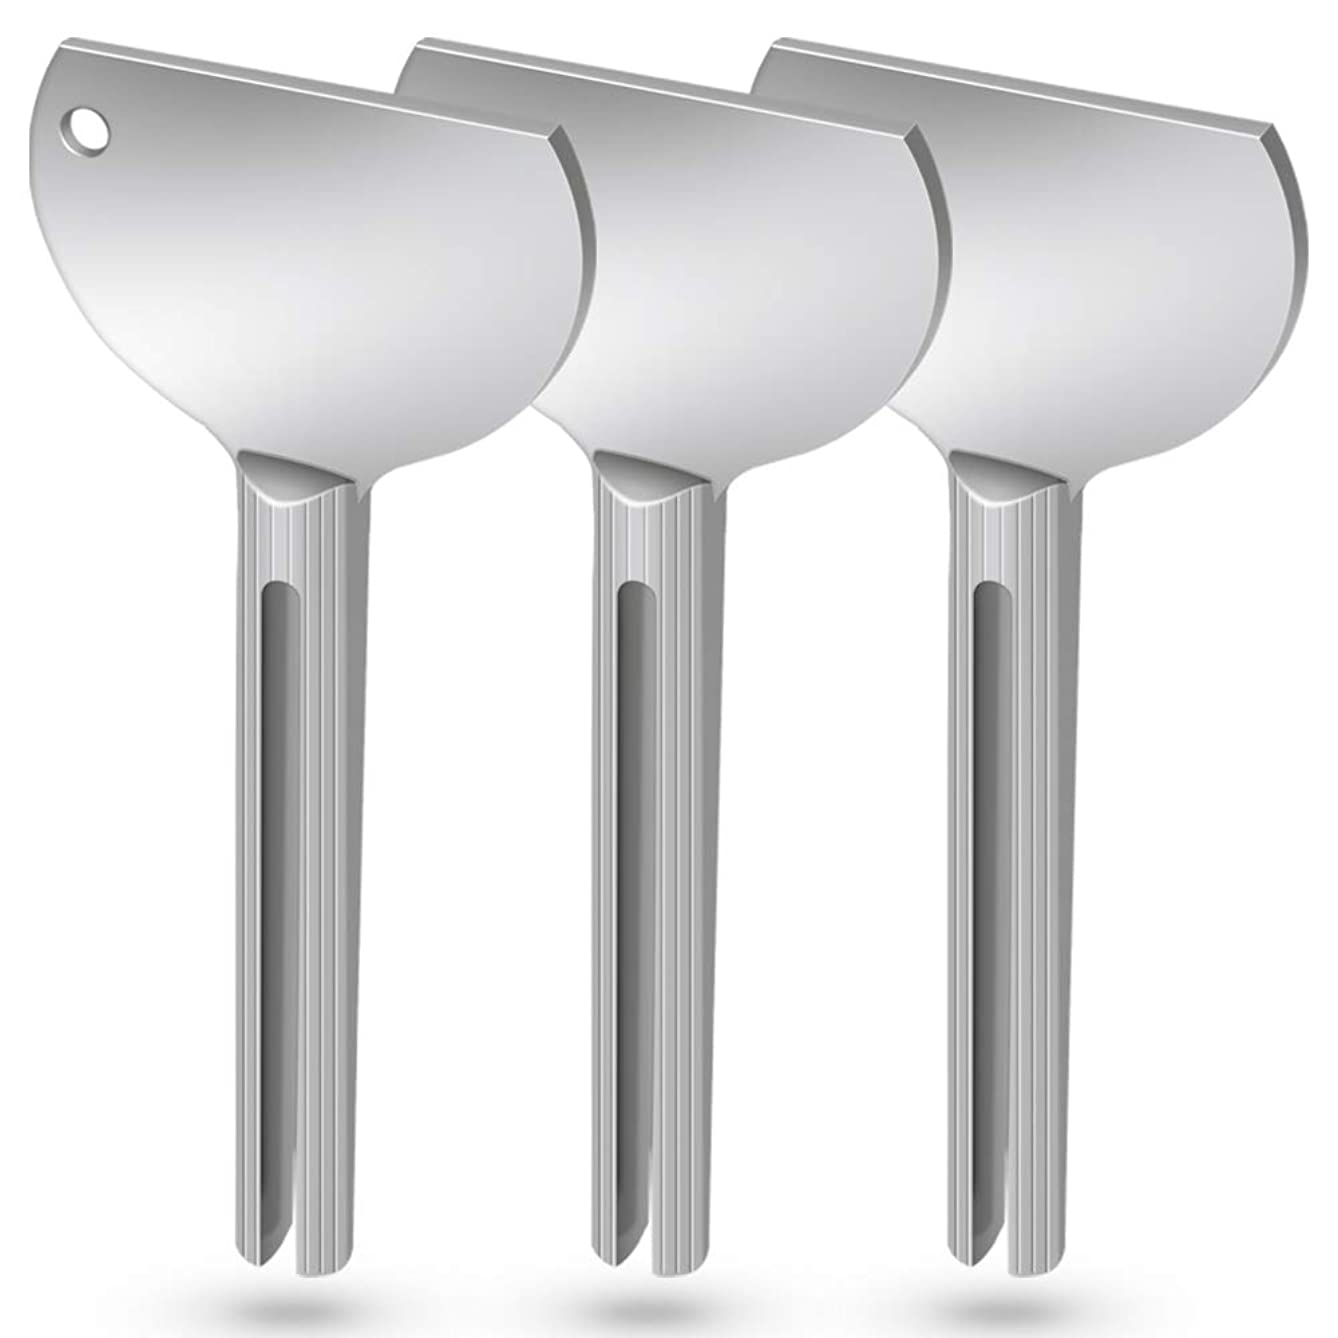 Toothpaste Squeezer, 3 Pack Metal Tube Squeezer Toothpaste Dispenser Hair Dye Color Key Roller Squeezers